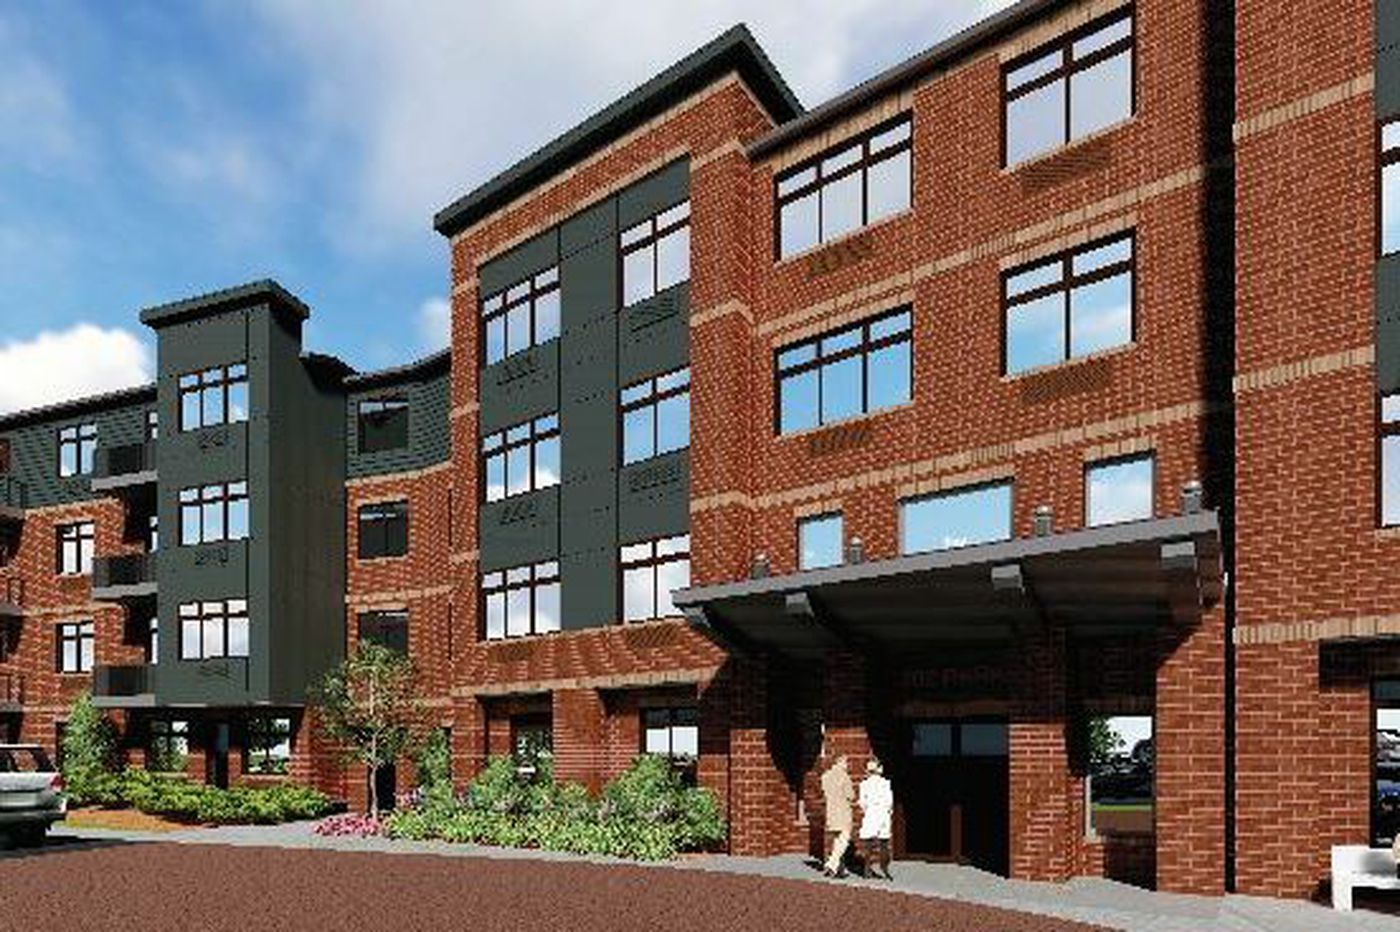 Development would transform blighted strip along Cooper River in Cherry Hill into luxury apartments